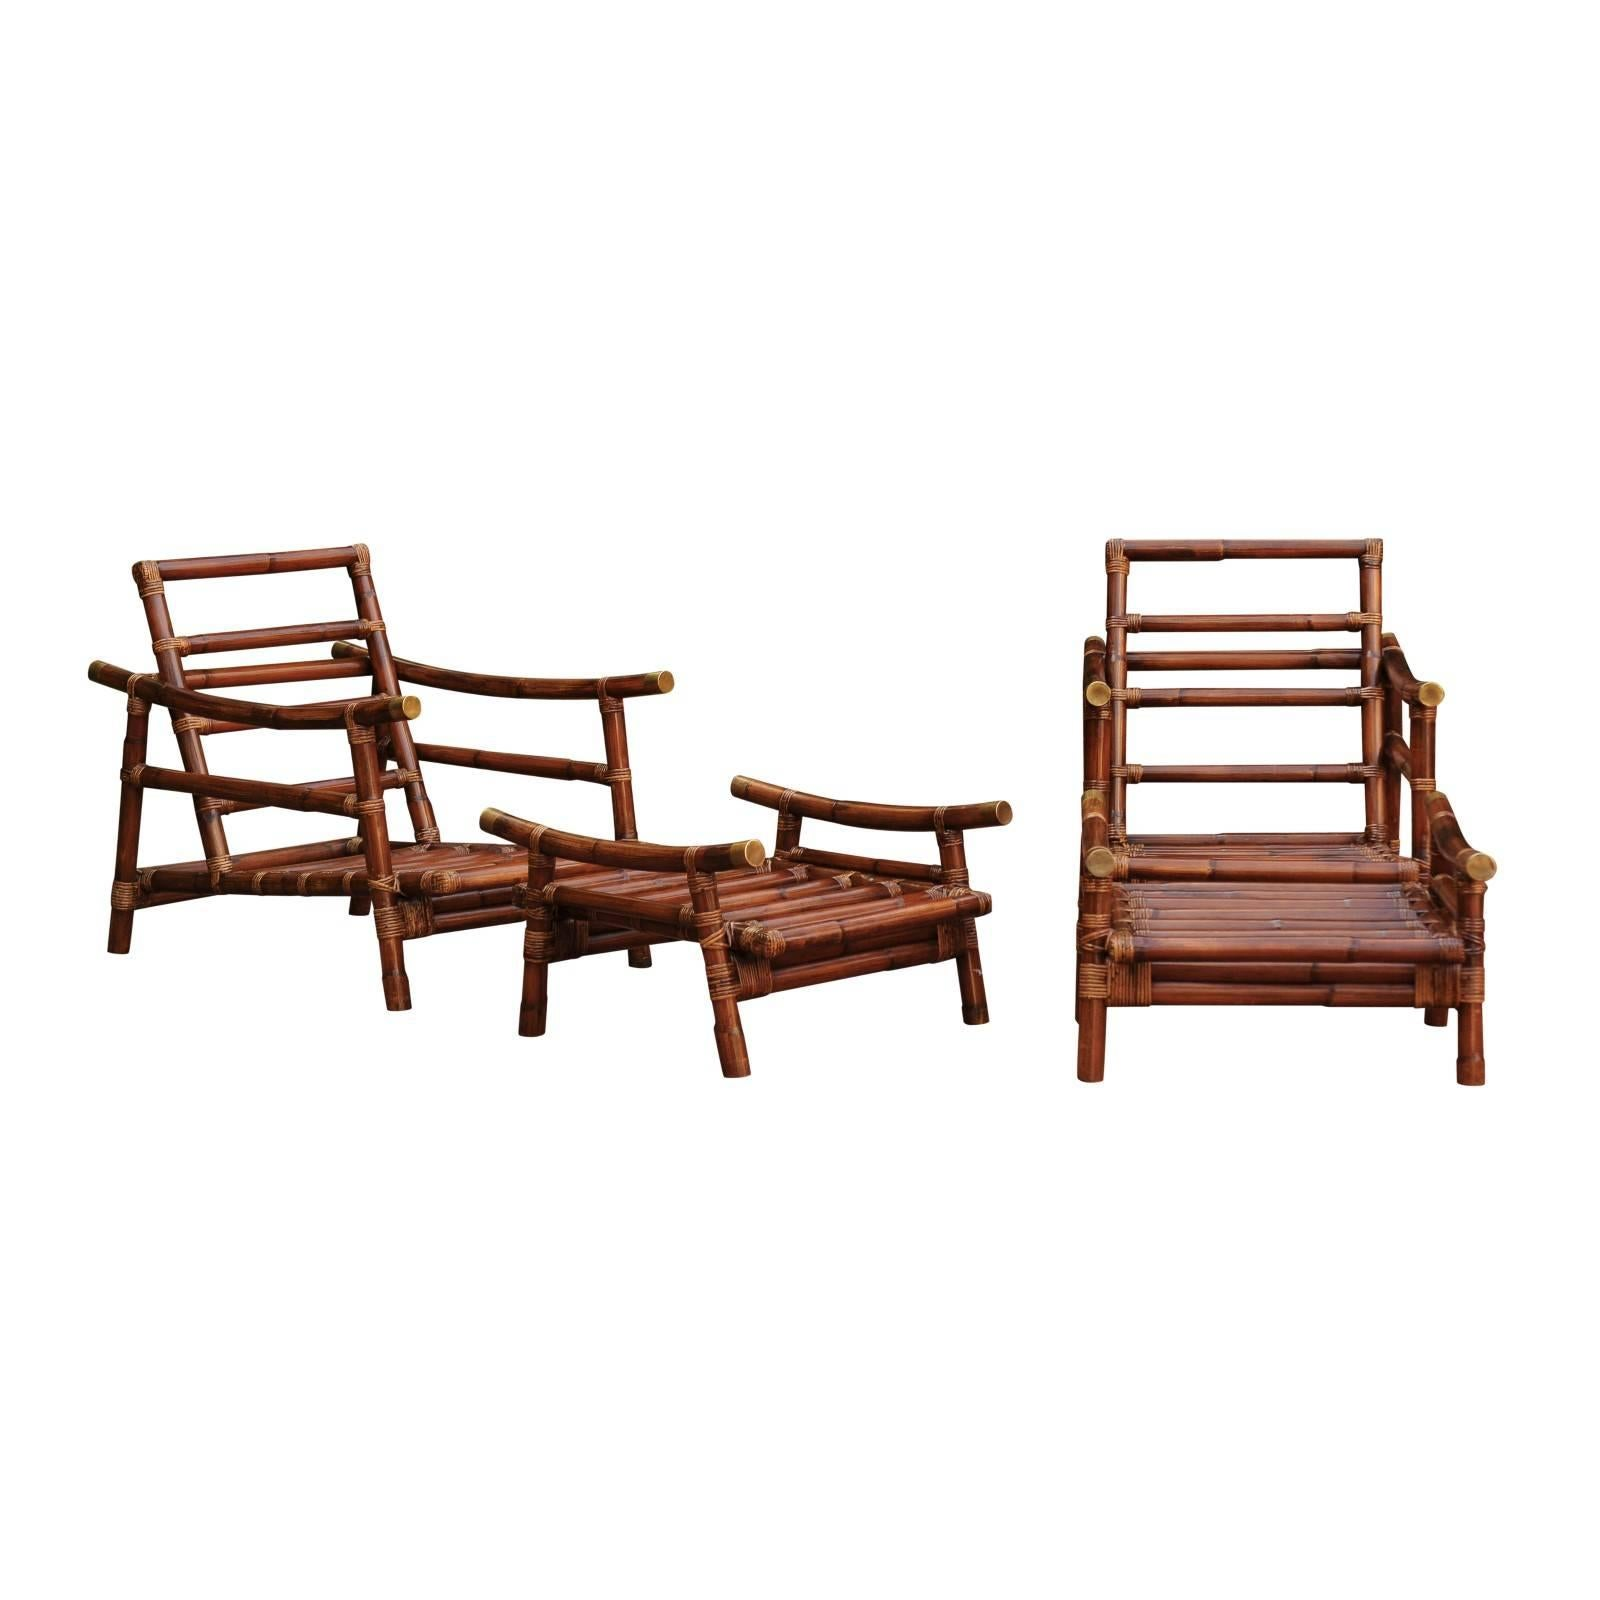 Fabulous Restored Pair of Custom-Commissioned Rattan Loungers with Ottomans